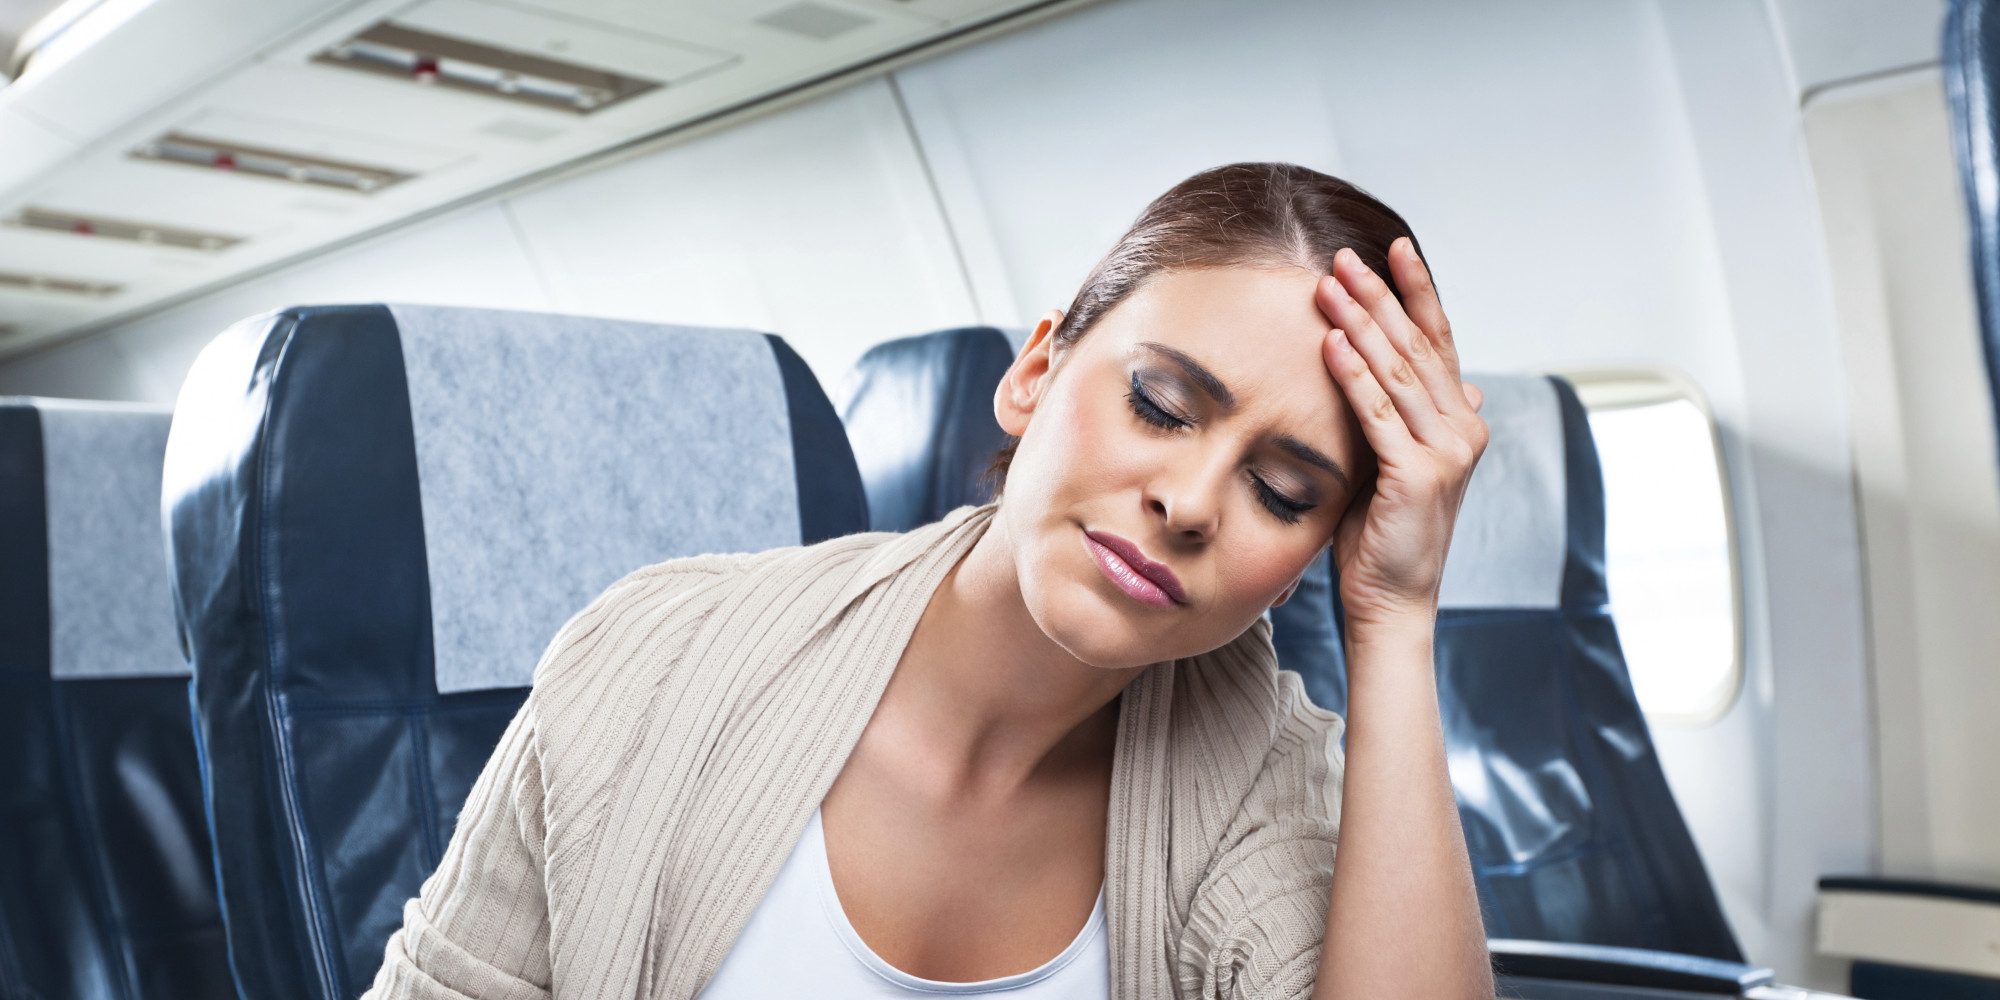 7 gadgets you should never use on a plane   huffpost  rh   huffingtonpost